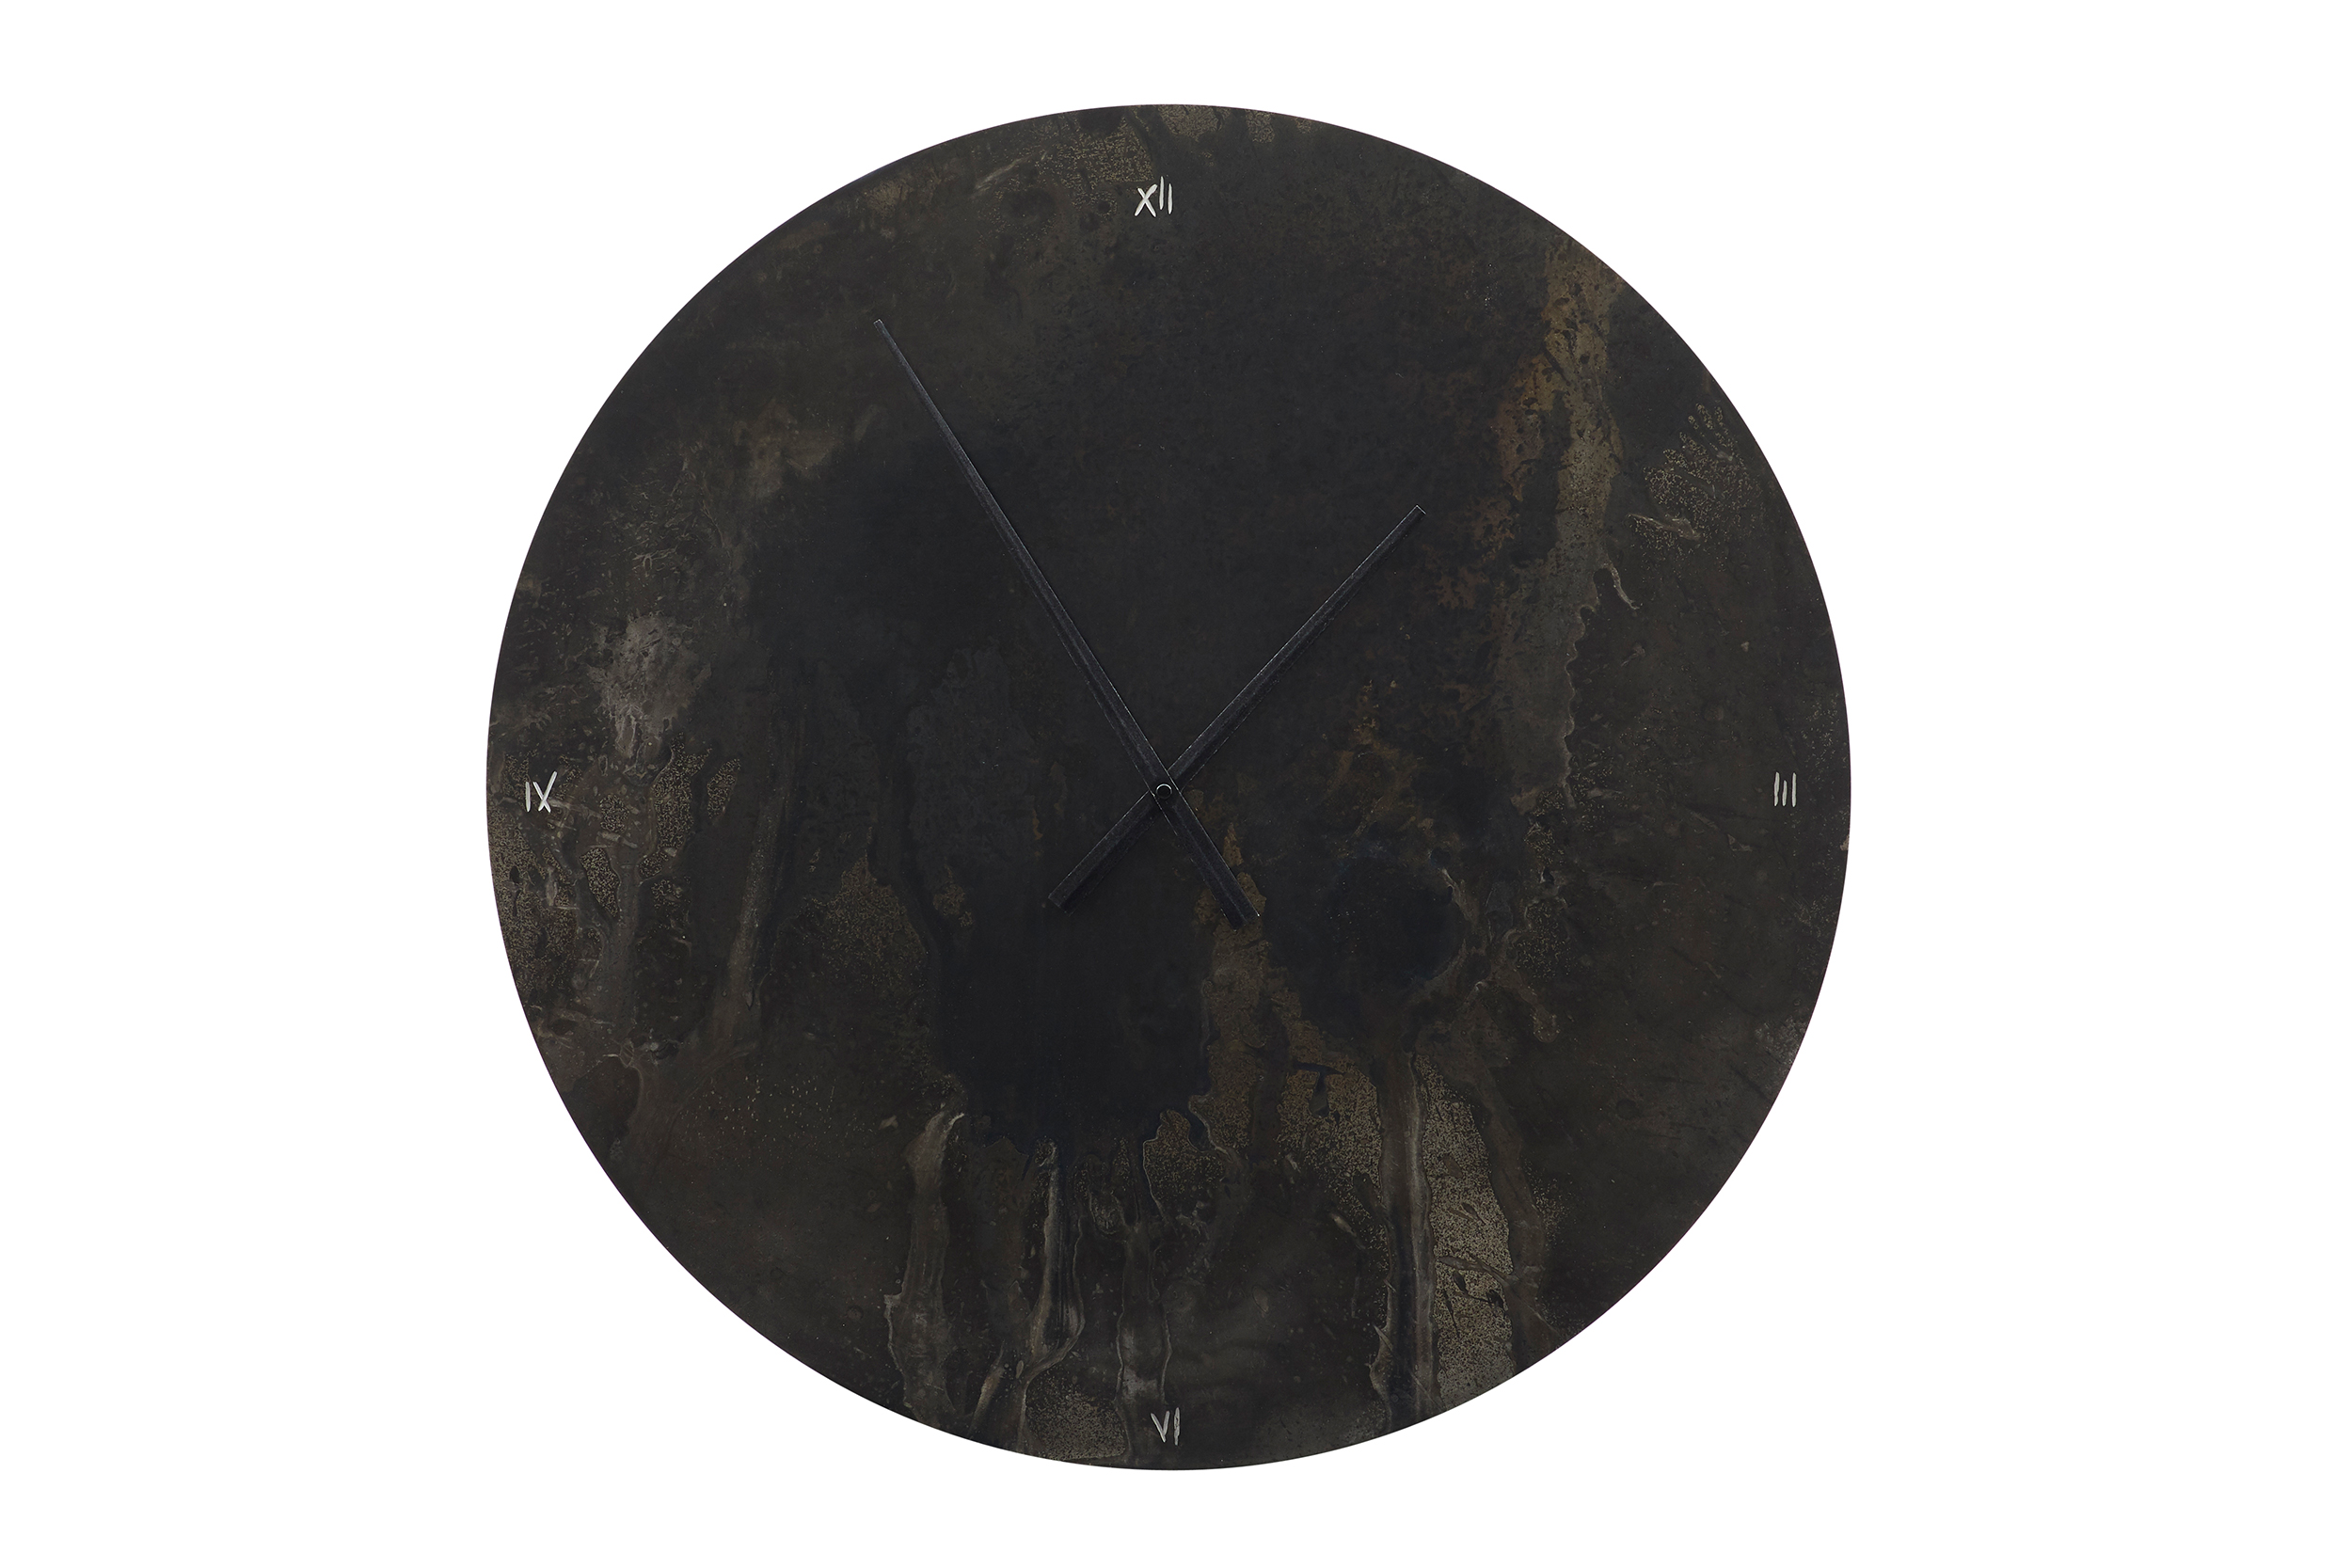 Steel Clock w_numbers.jpg